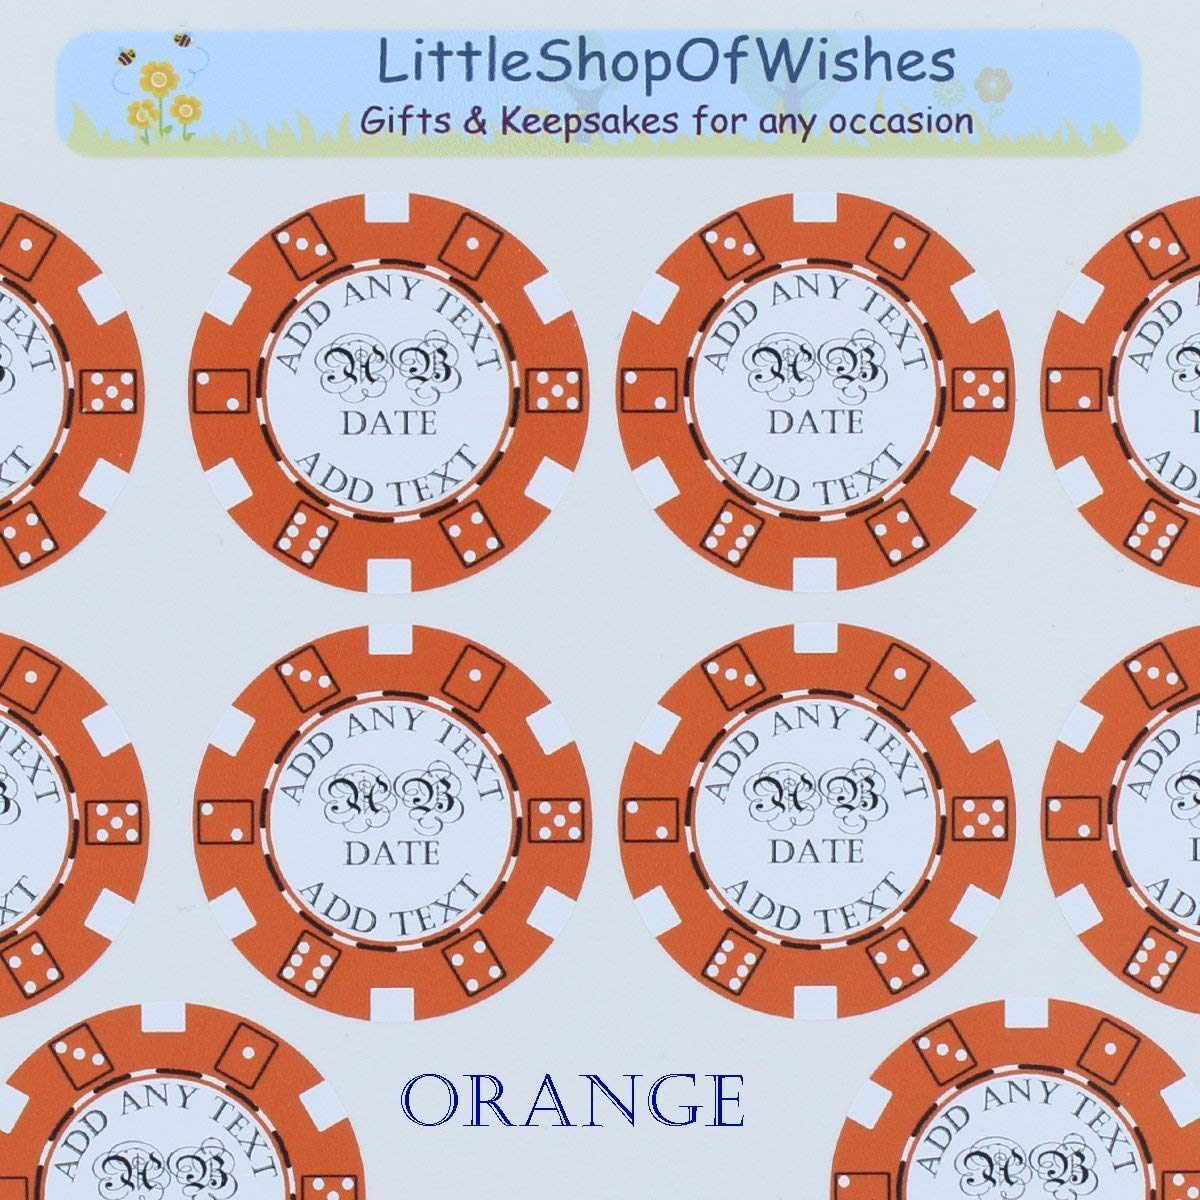 Wedding stickers poker chips vinyl casino theme personalised favours labels seal las vegas style pack of 10 or 50 littleshopofwishes amazon co uk